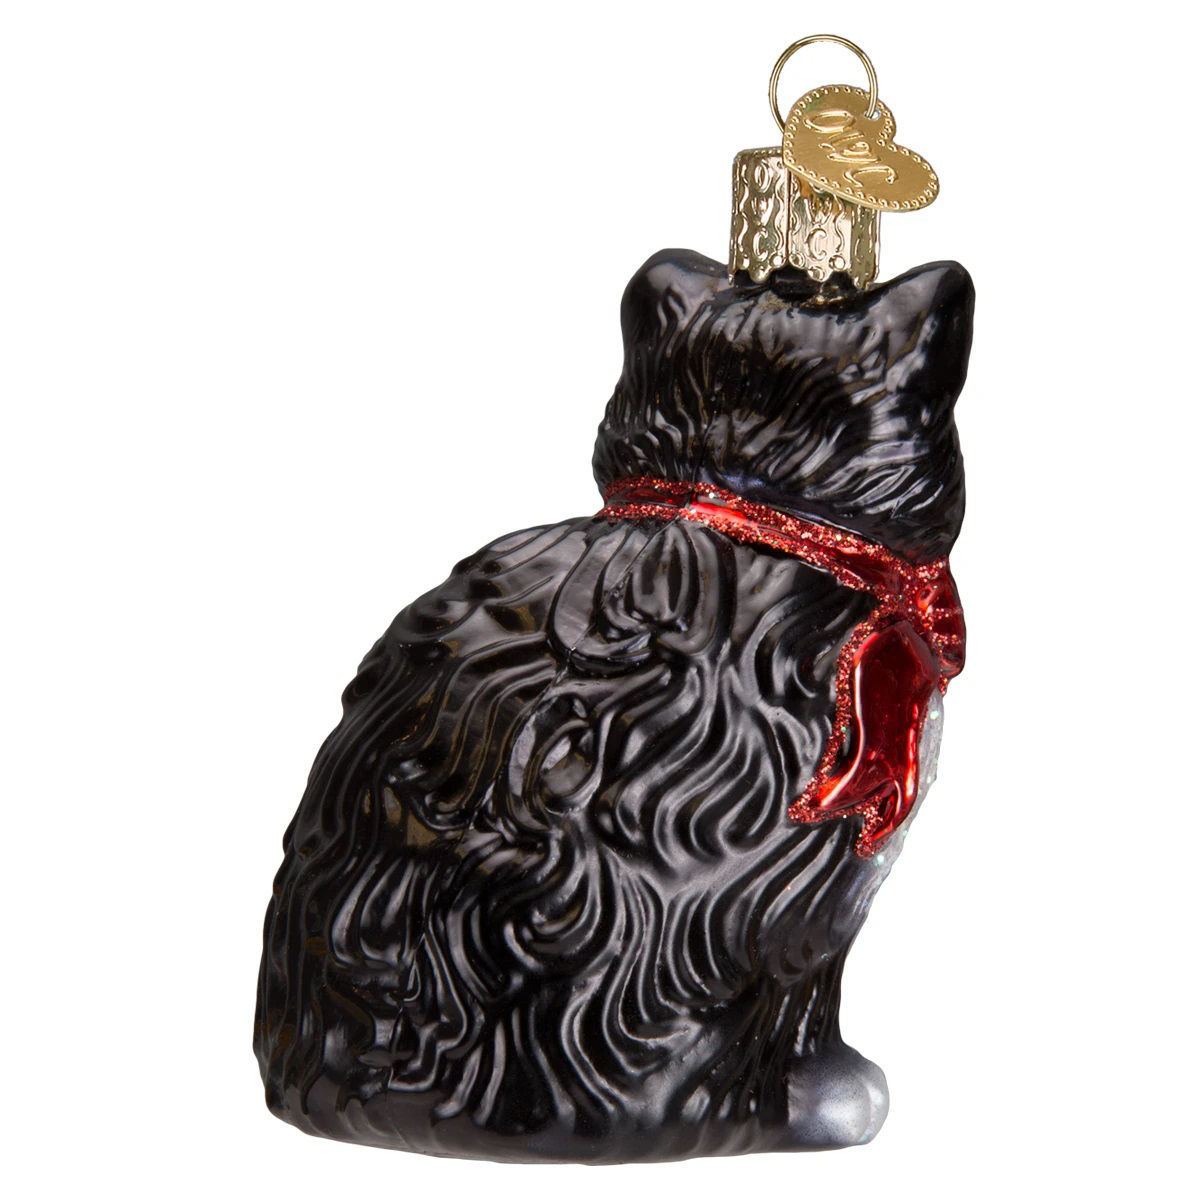 Tuxedo Kitty Ornament by Old World Christmas